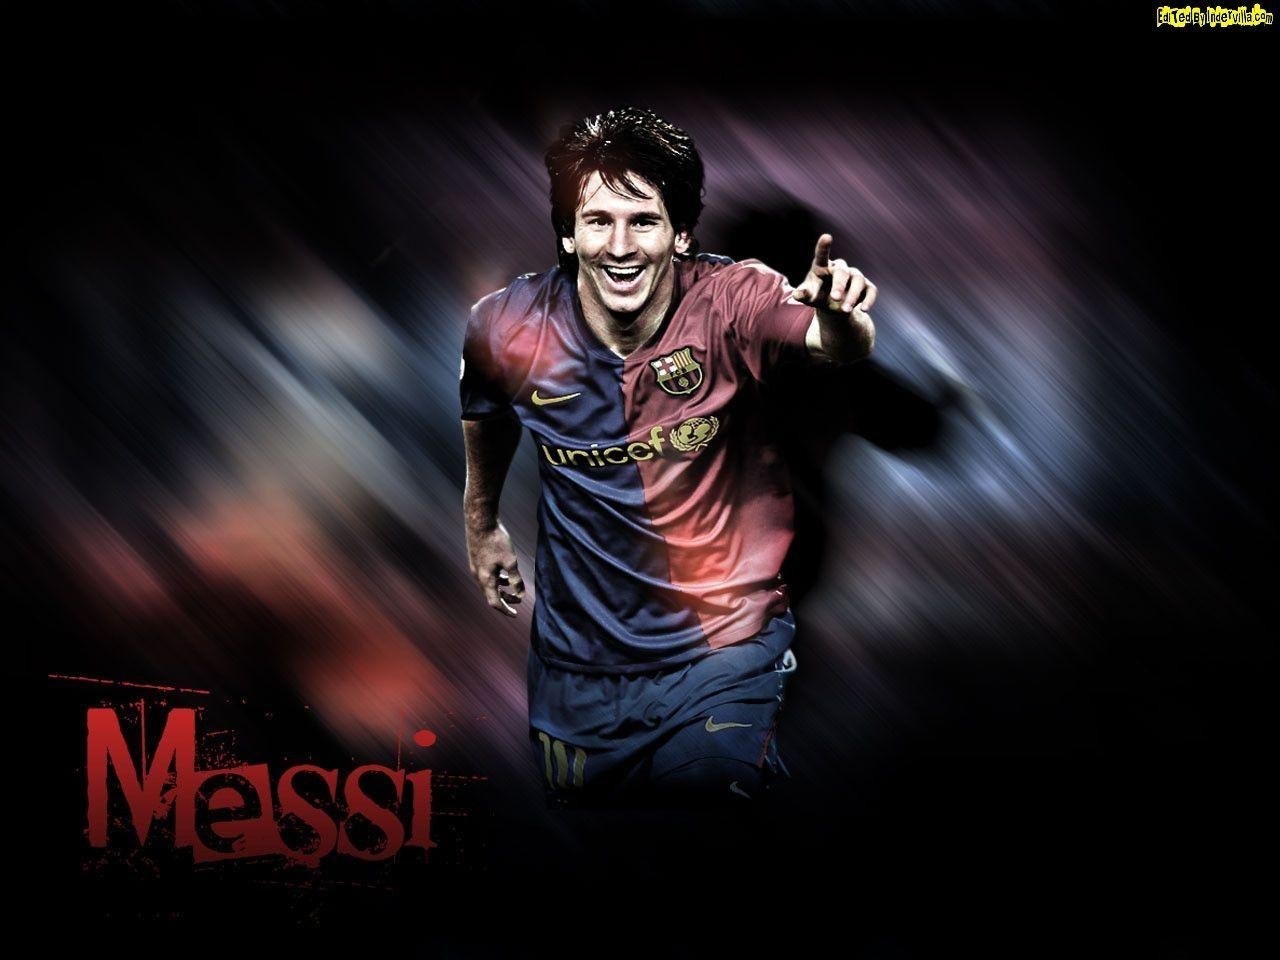 Lionel Messi Wallpaper Hd Background Wallpaper 78 HD Wallpapers ...